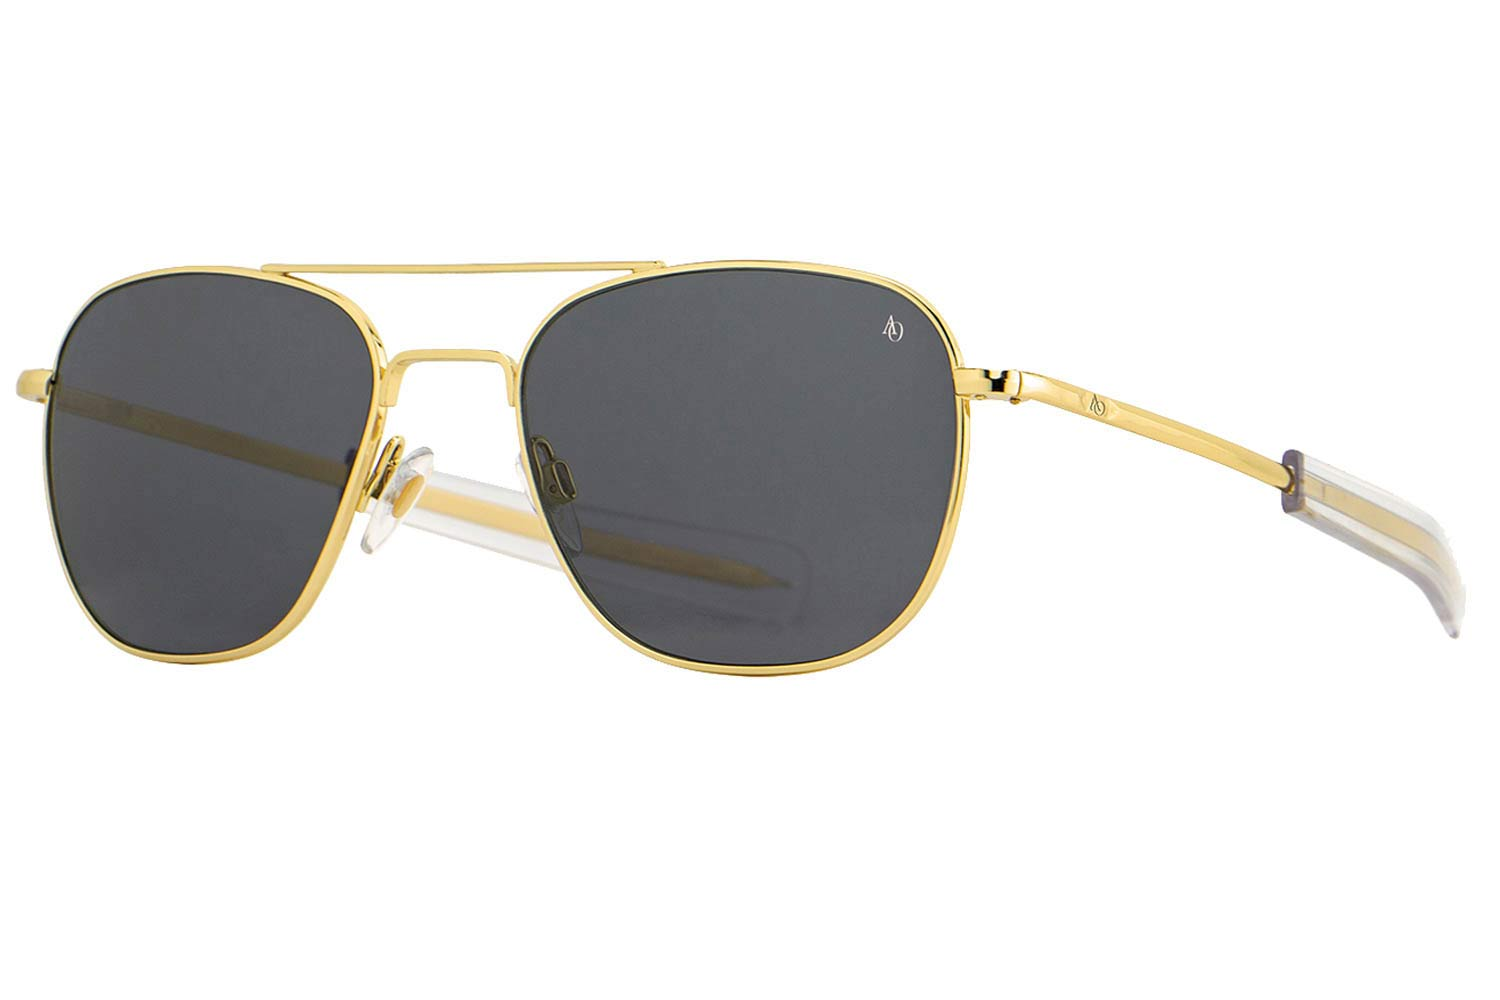 423d3eb050 Extreme ZOOM Eye-Shop. Add to Cart. Sunglasses American Optical ORIGINAL  PILOT GOLD